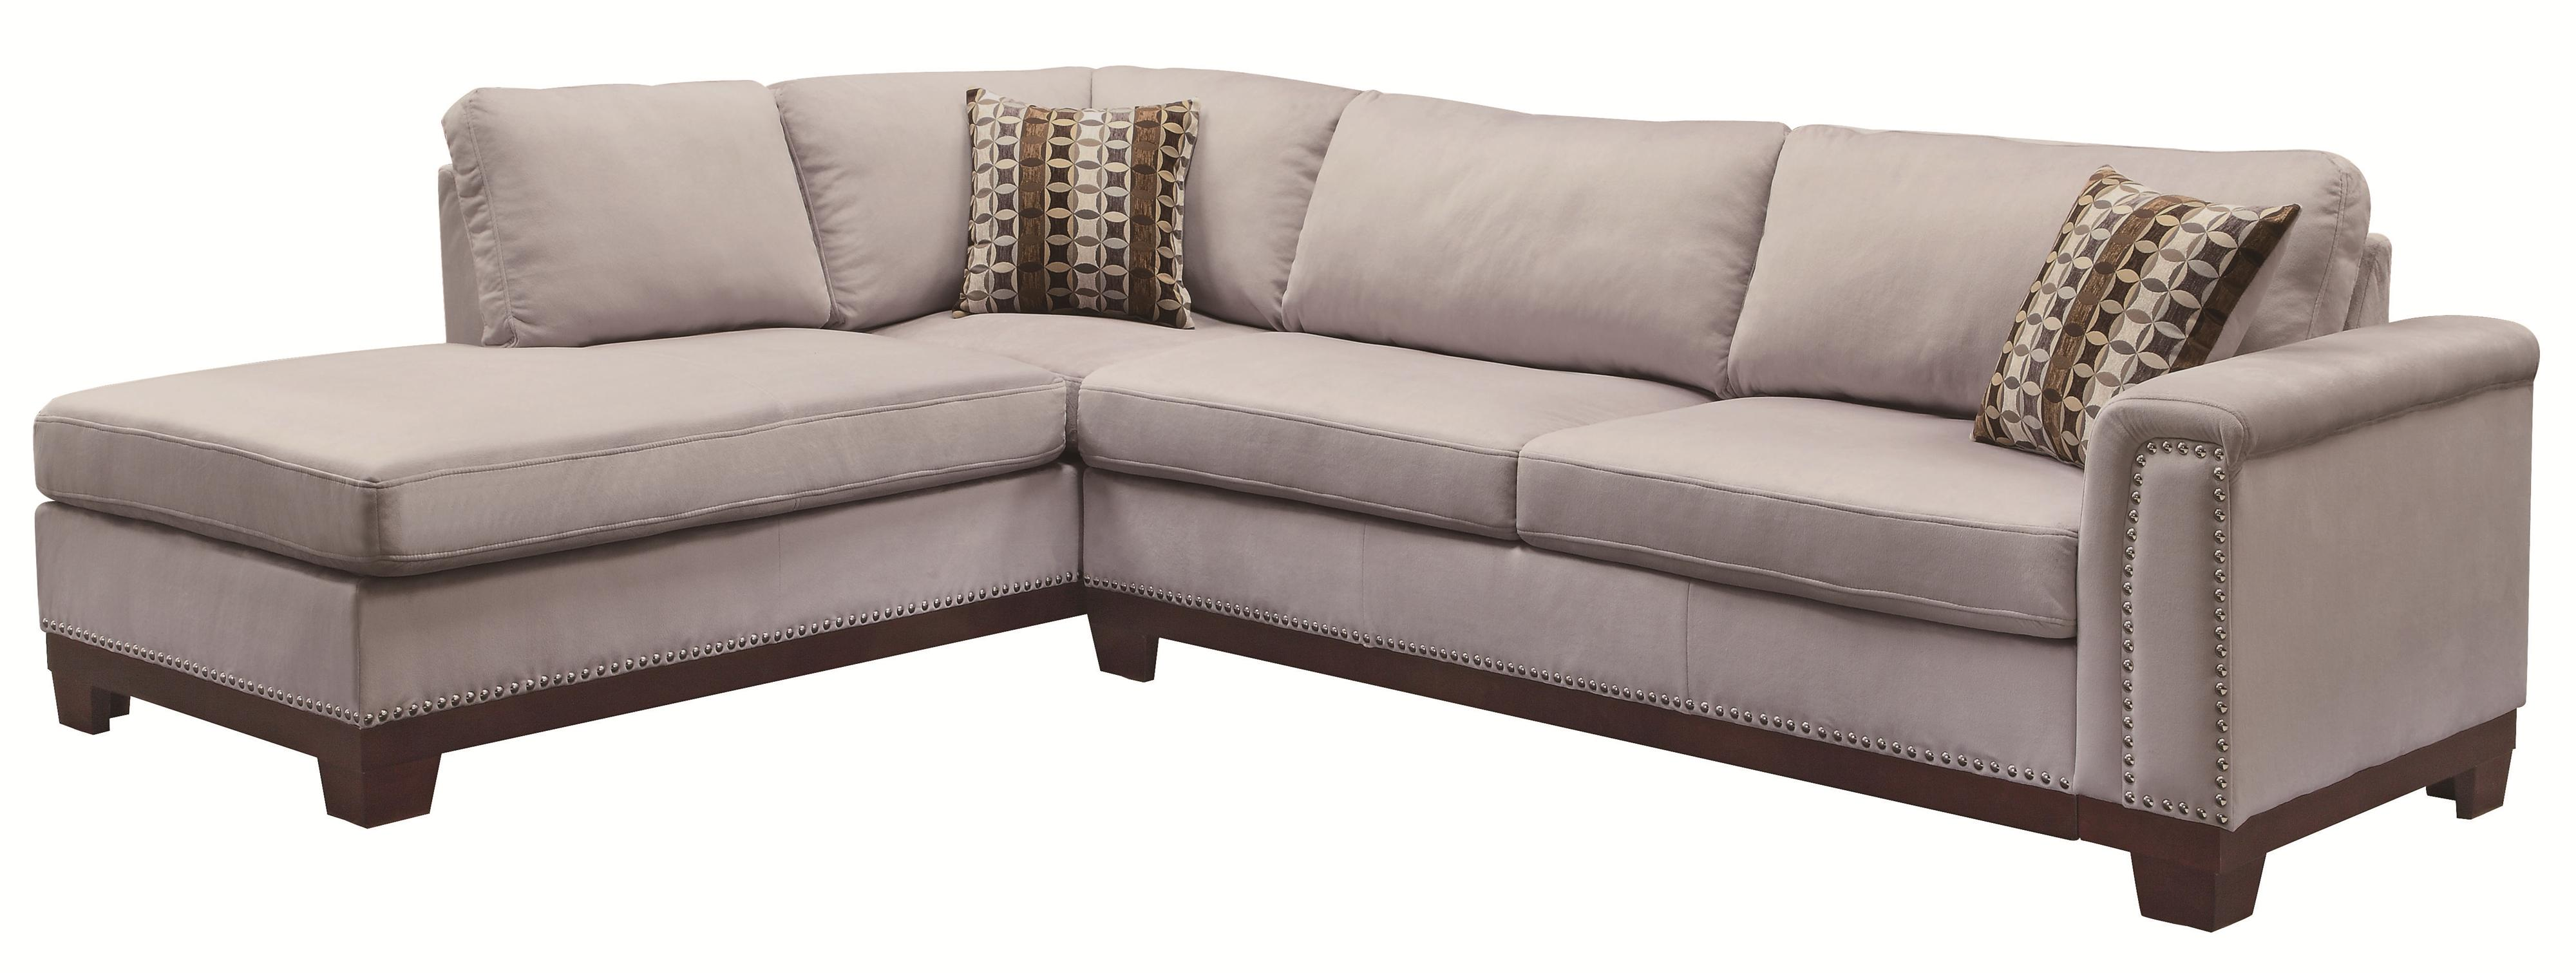 Cheap Sectional Sofa Mason Track Arm Reversible Sofa Chaise Sectional By Coaster At Value City Furniture